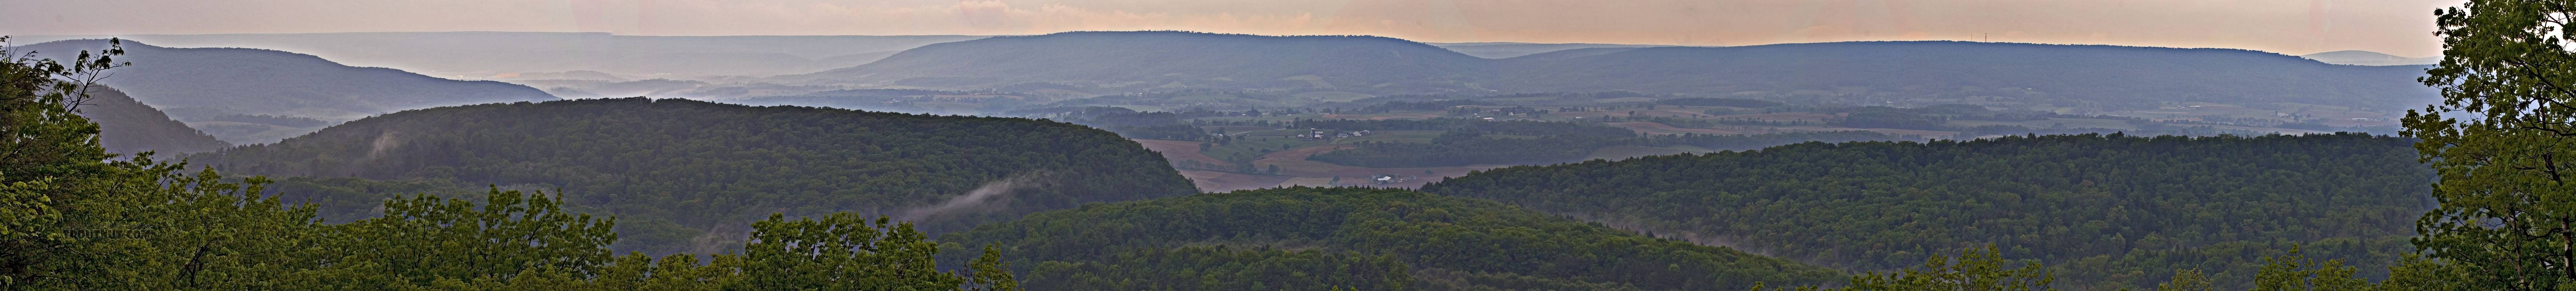 Panorama of a trout stream valley after a May thunderstorm. From Penn's Creek in Pennsylvania.